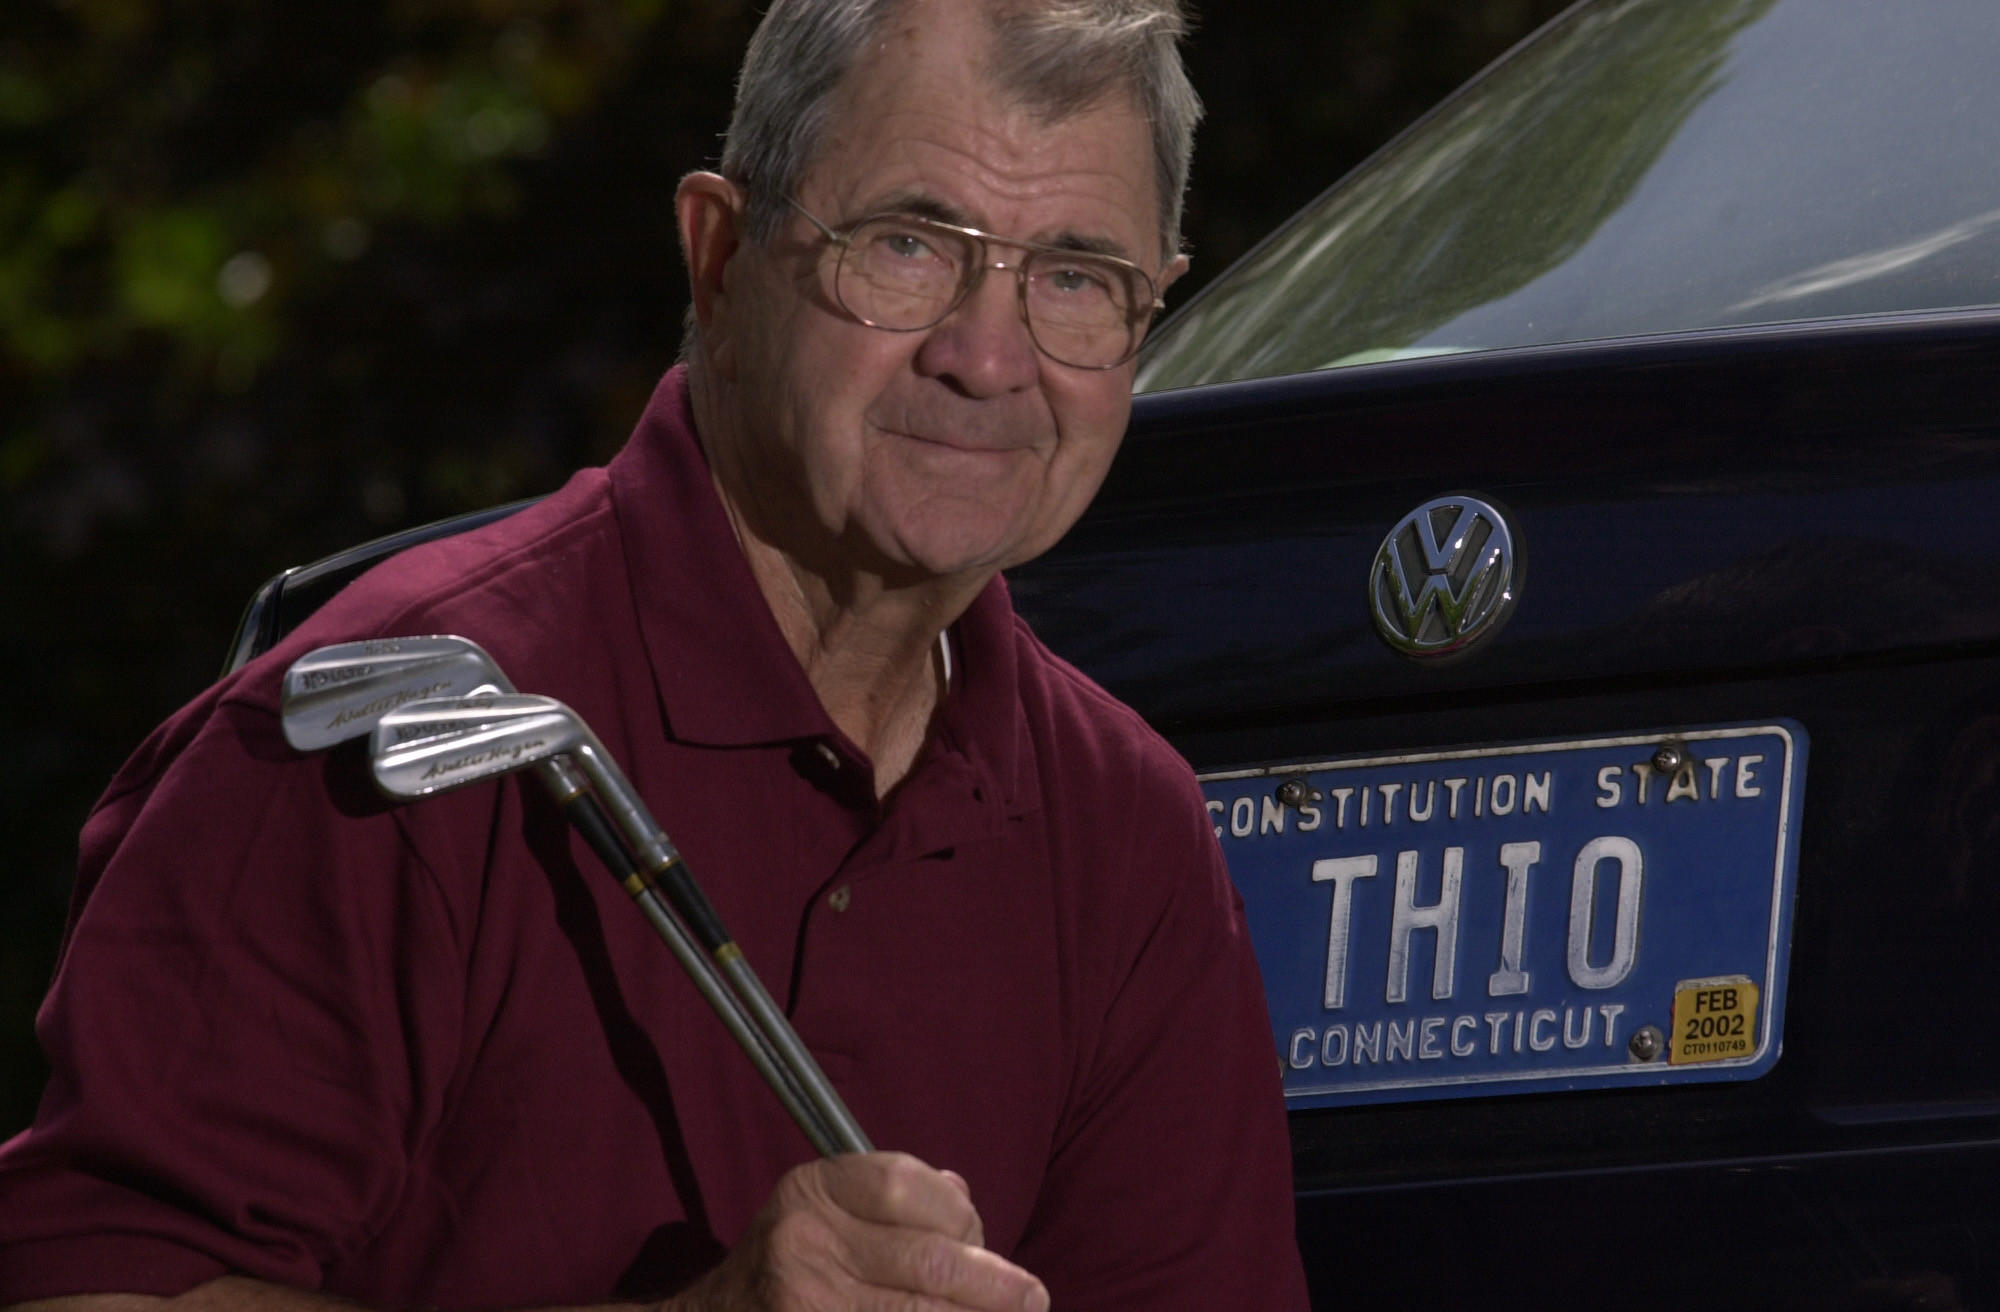 Bill Whedon of West Hartford played in the 1955 Insurance City Open as an amateur and is the only player to ever record two holes in one in a pro event. Since the 1950's he has had a licence plate for his car 'THIO' to signify his Two Holes in One. He is holding the 3 and 5 irons he used to hit the holes in one.